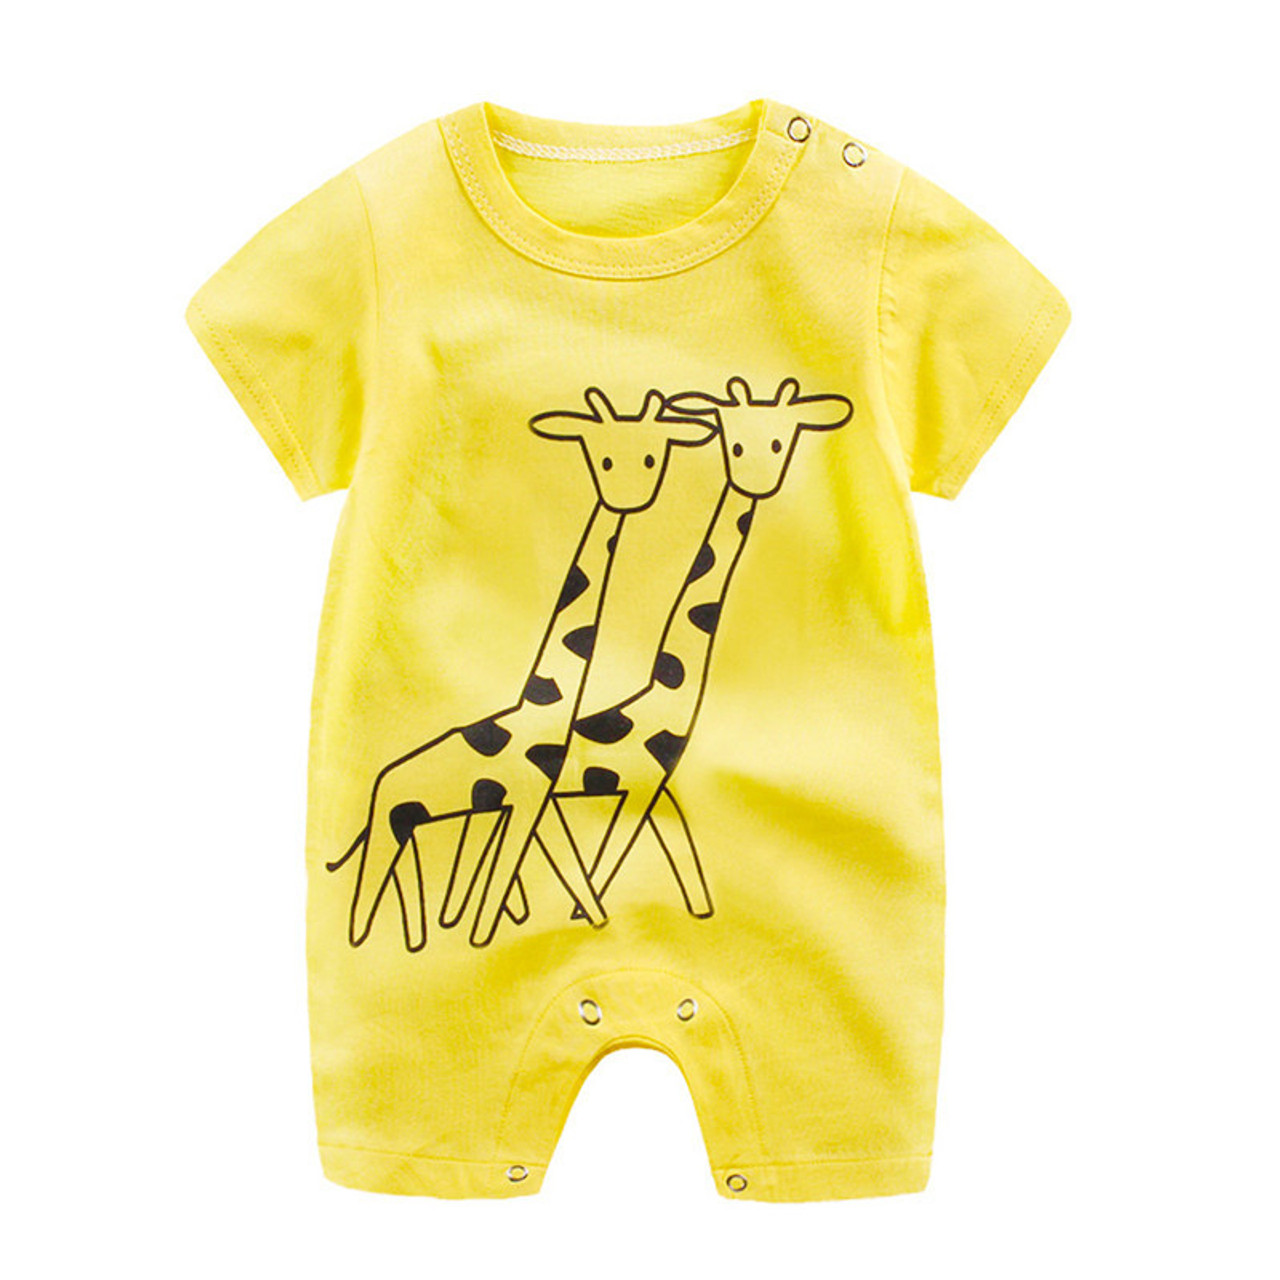 a3df6482a3a 2018 New baby rompers Newborn Infant Baby Boy Girl Summer clothes Cute  Cartoon Printed Romper Jumpsuit ...